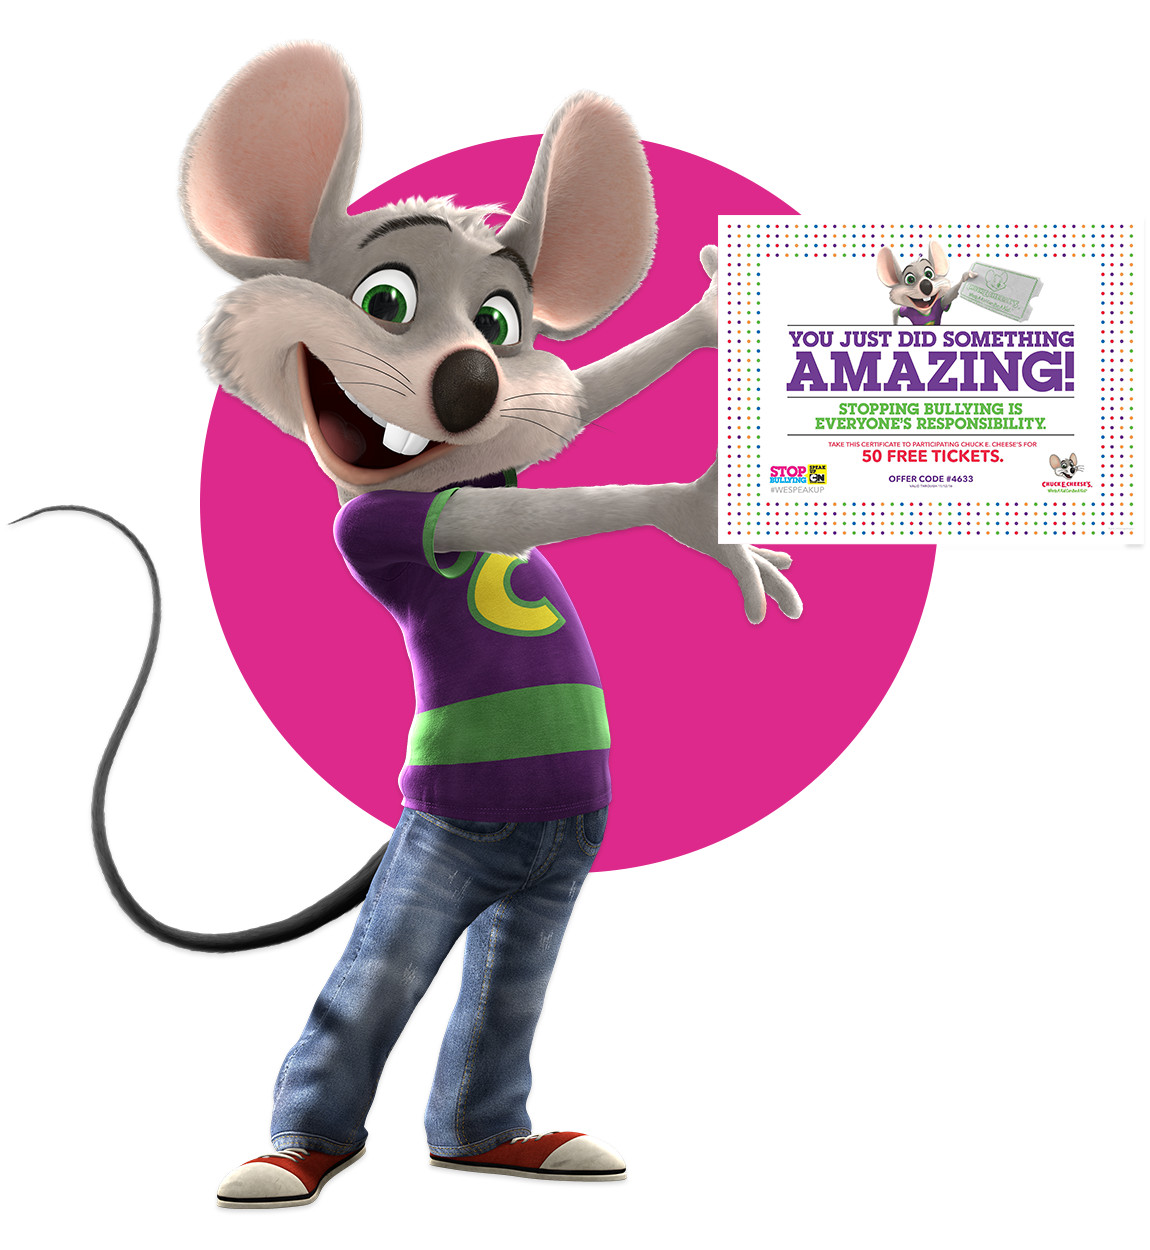 chuck-e-cheese-free-tickets